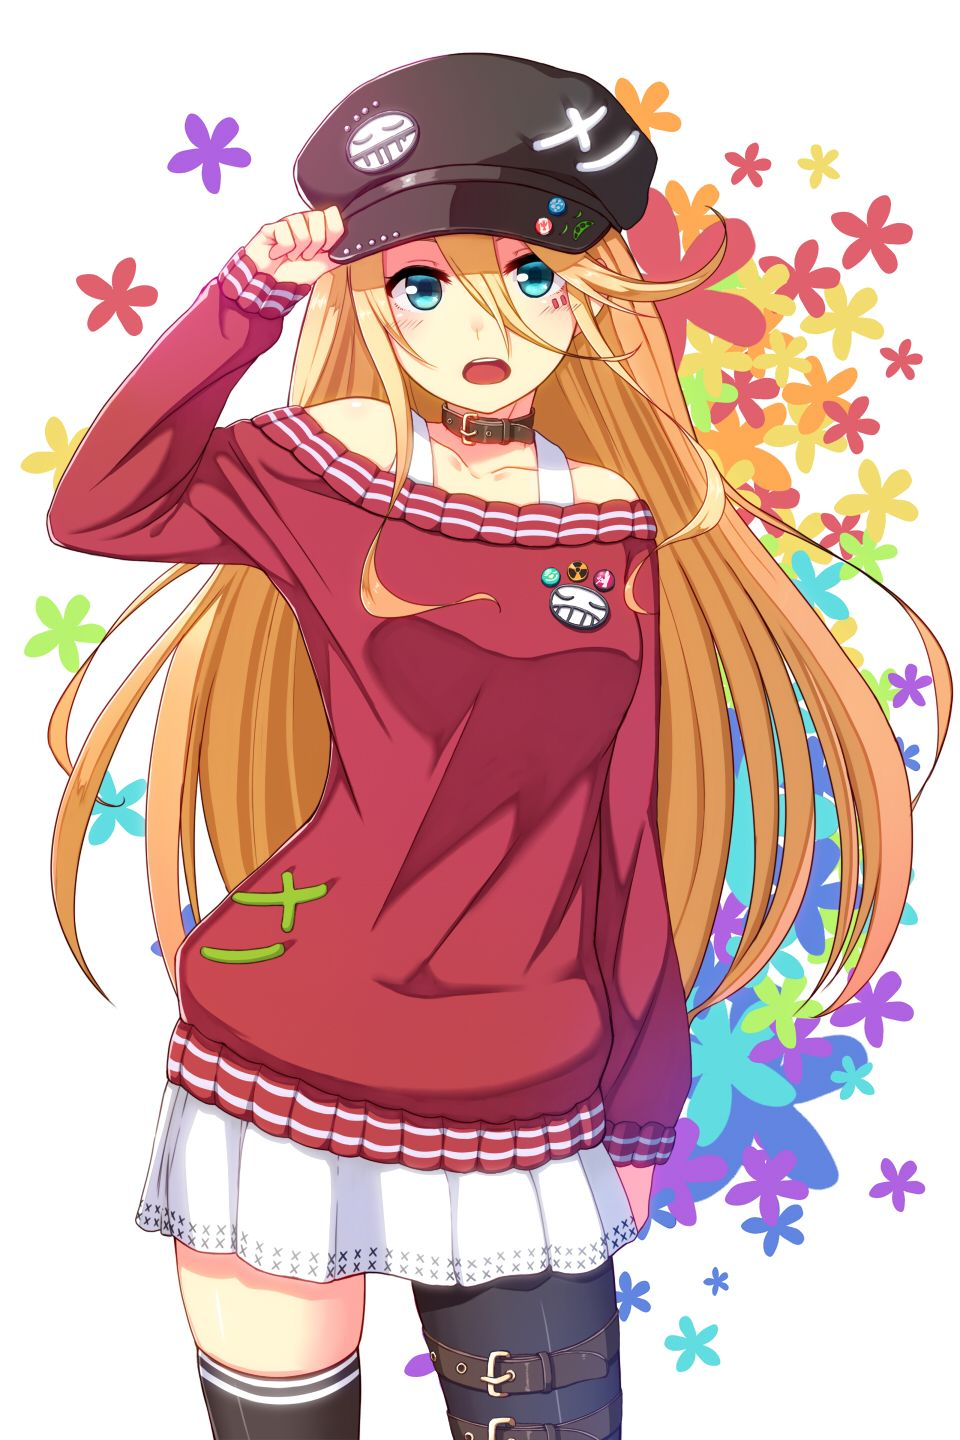 Anime Girl with orange/blonde hair, blue eyes, red sleeved shirt, white  skirt, choker, flowers, pins and a hat